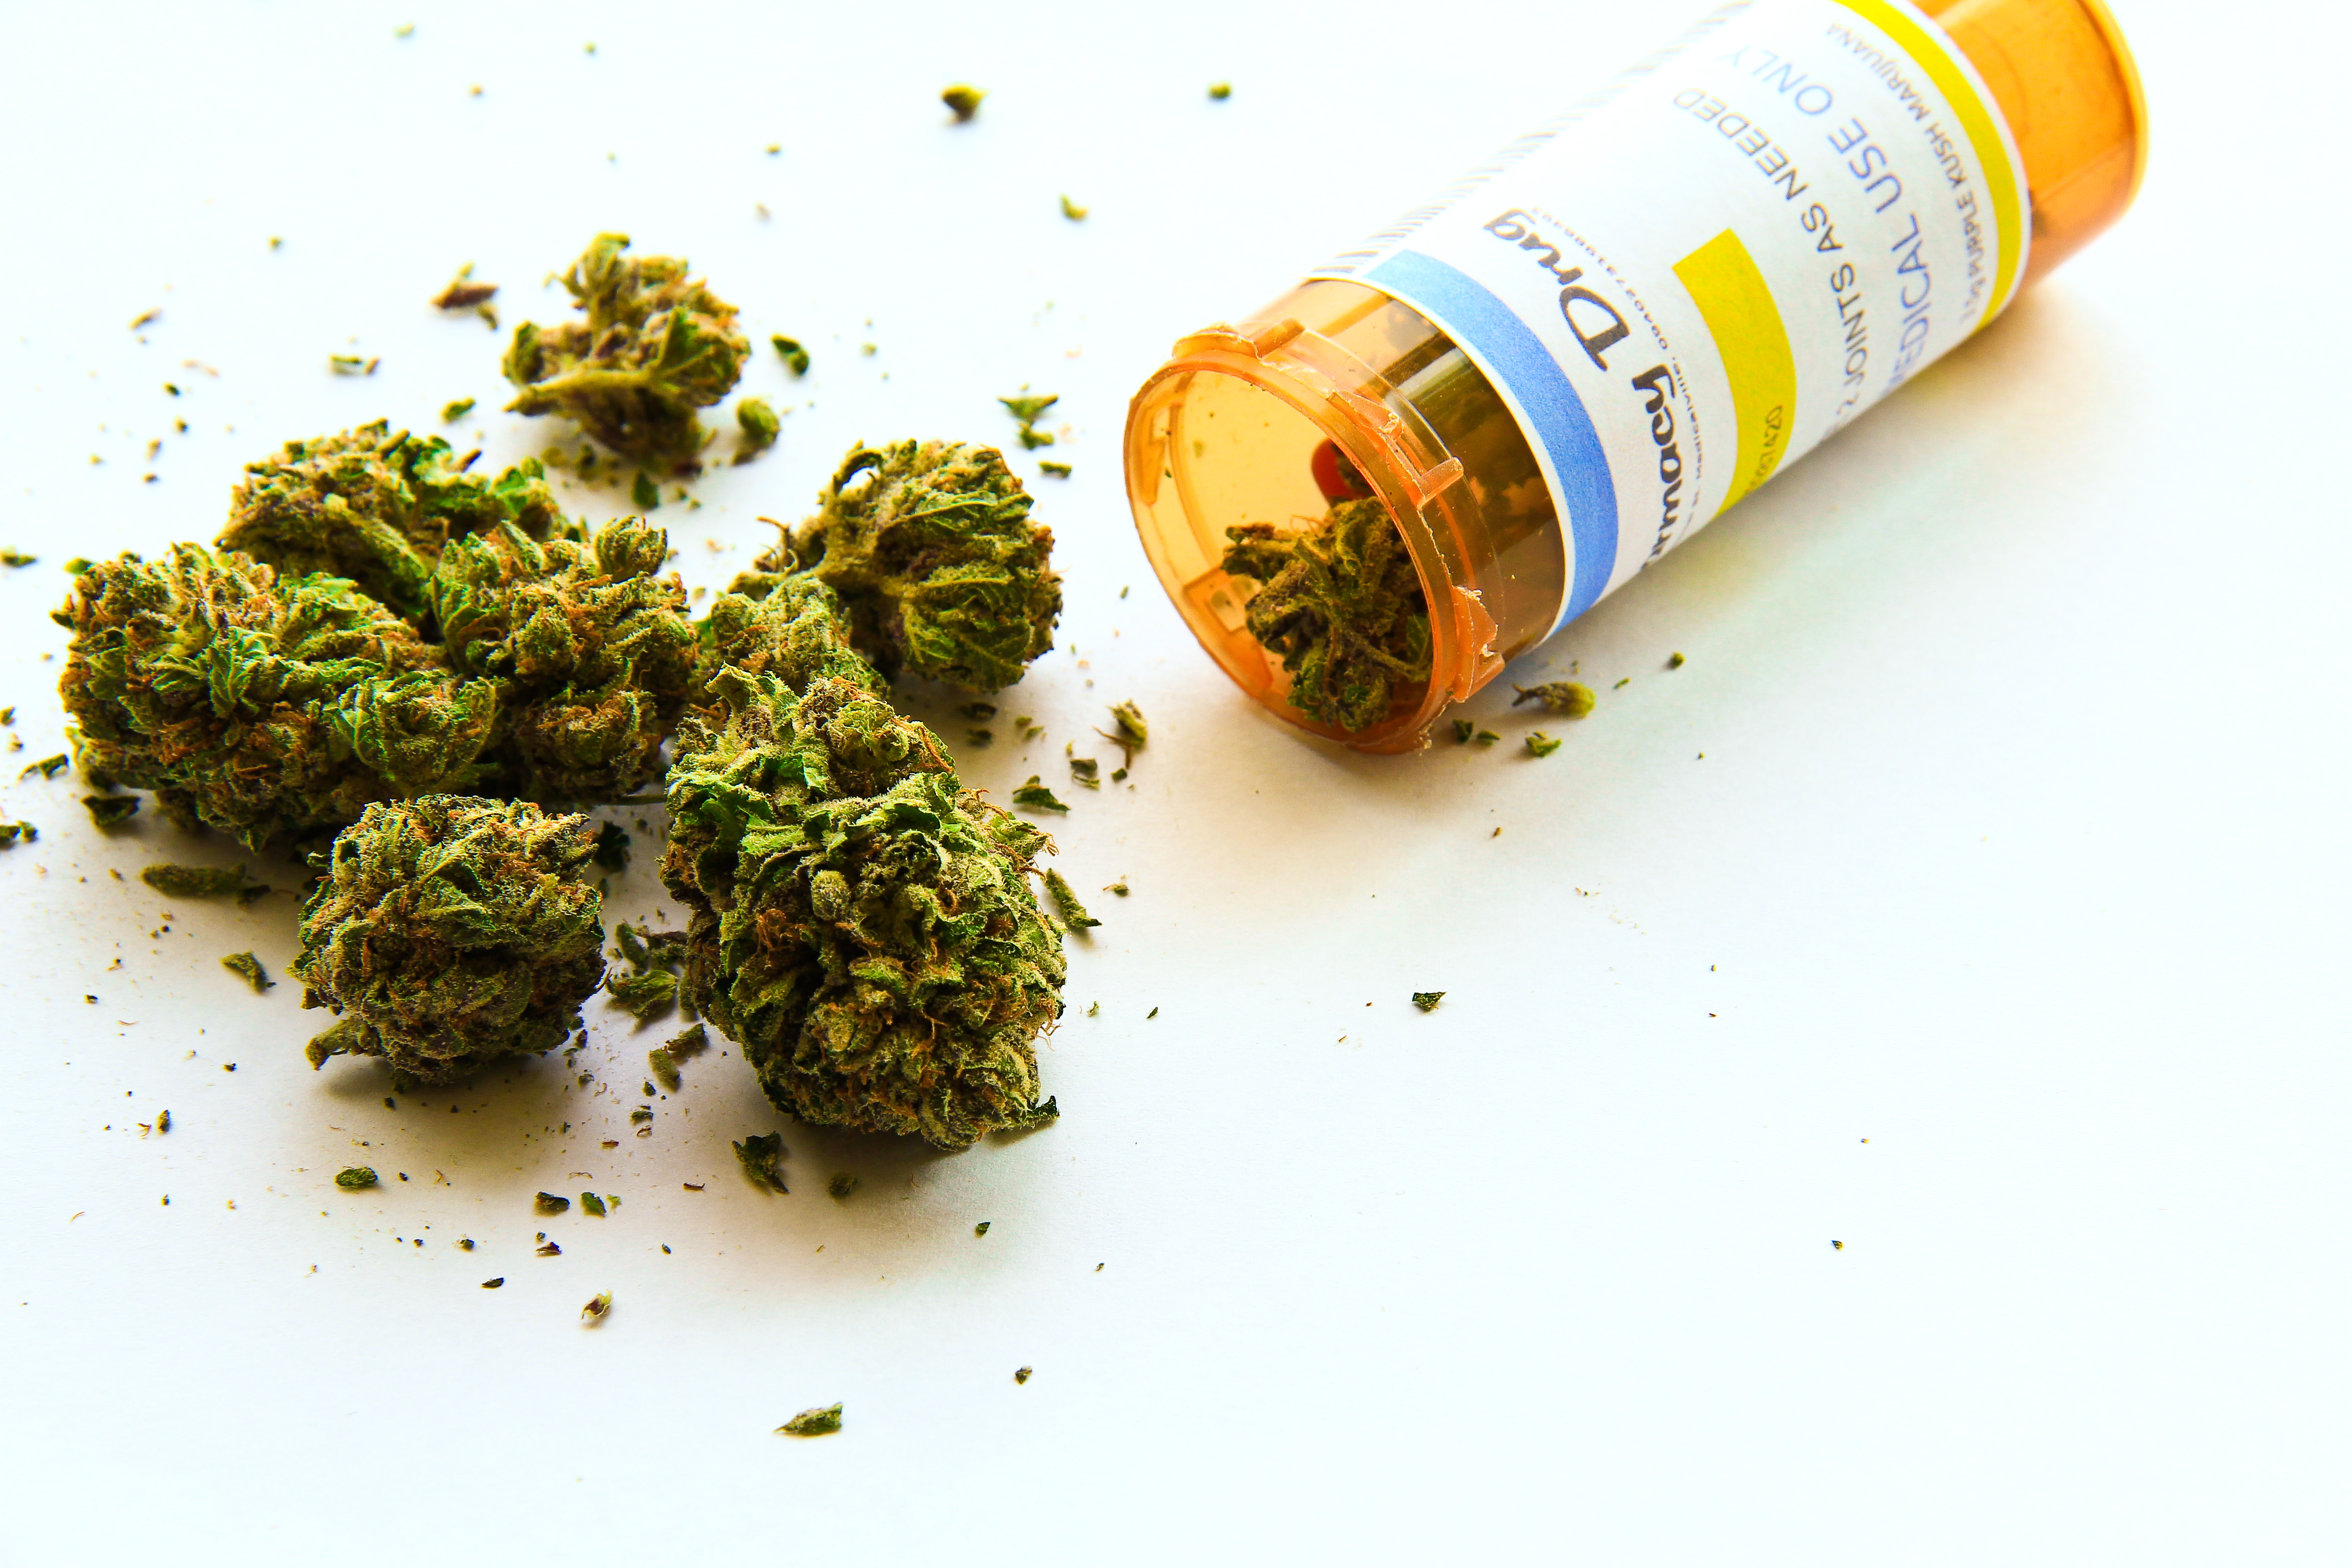 Marijuana: The difference between Medical use and recreational use